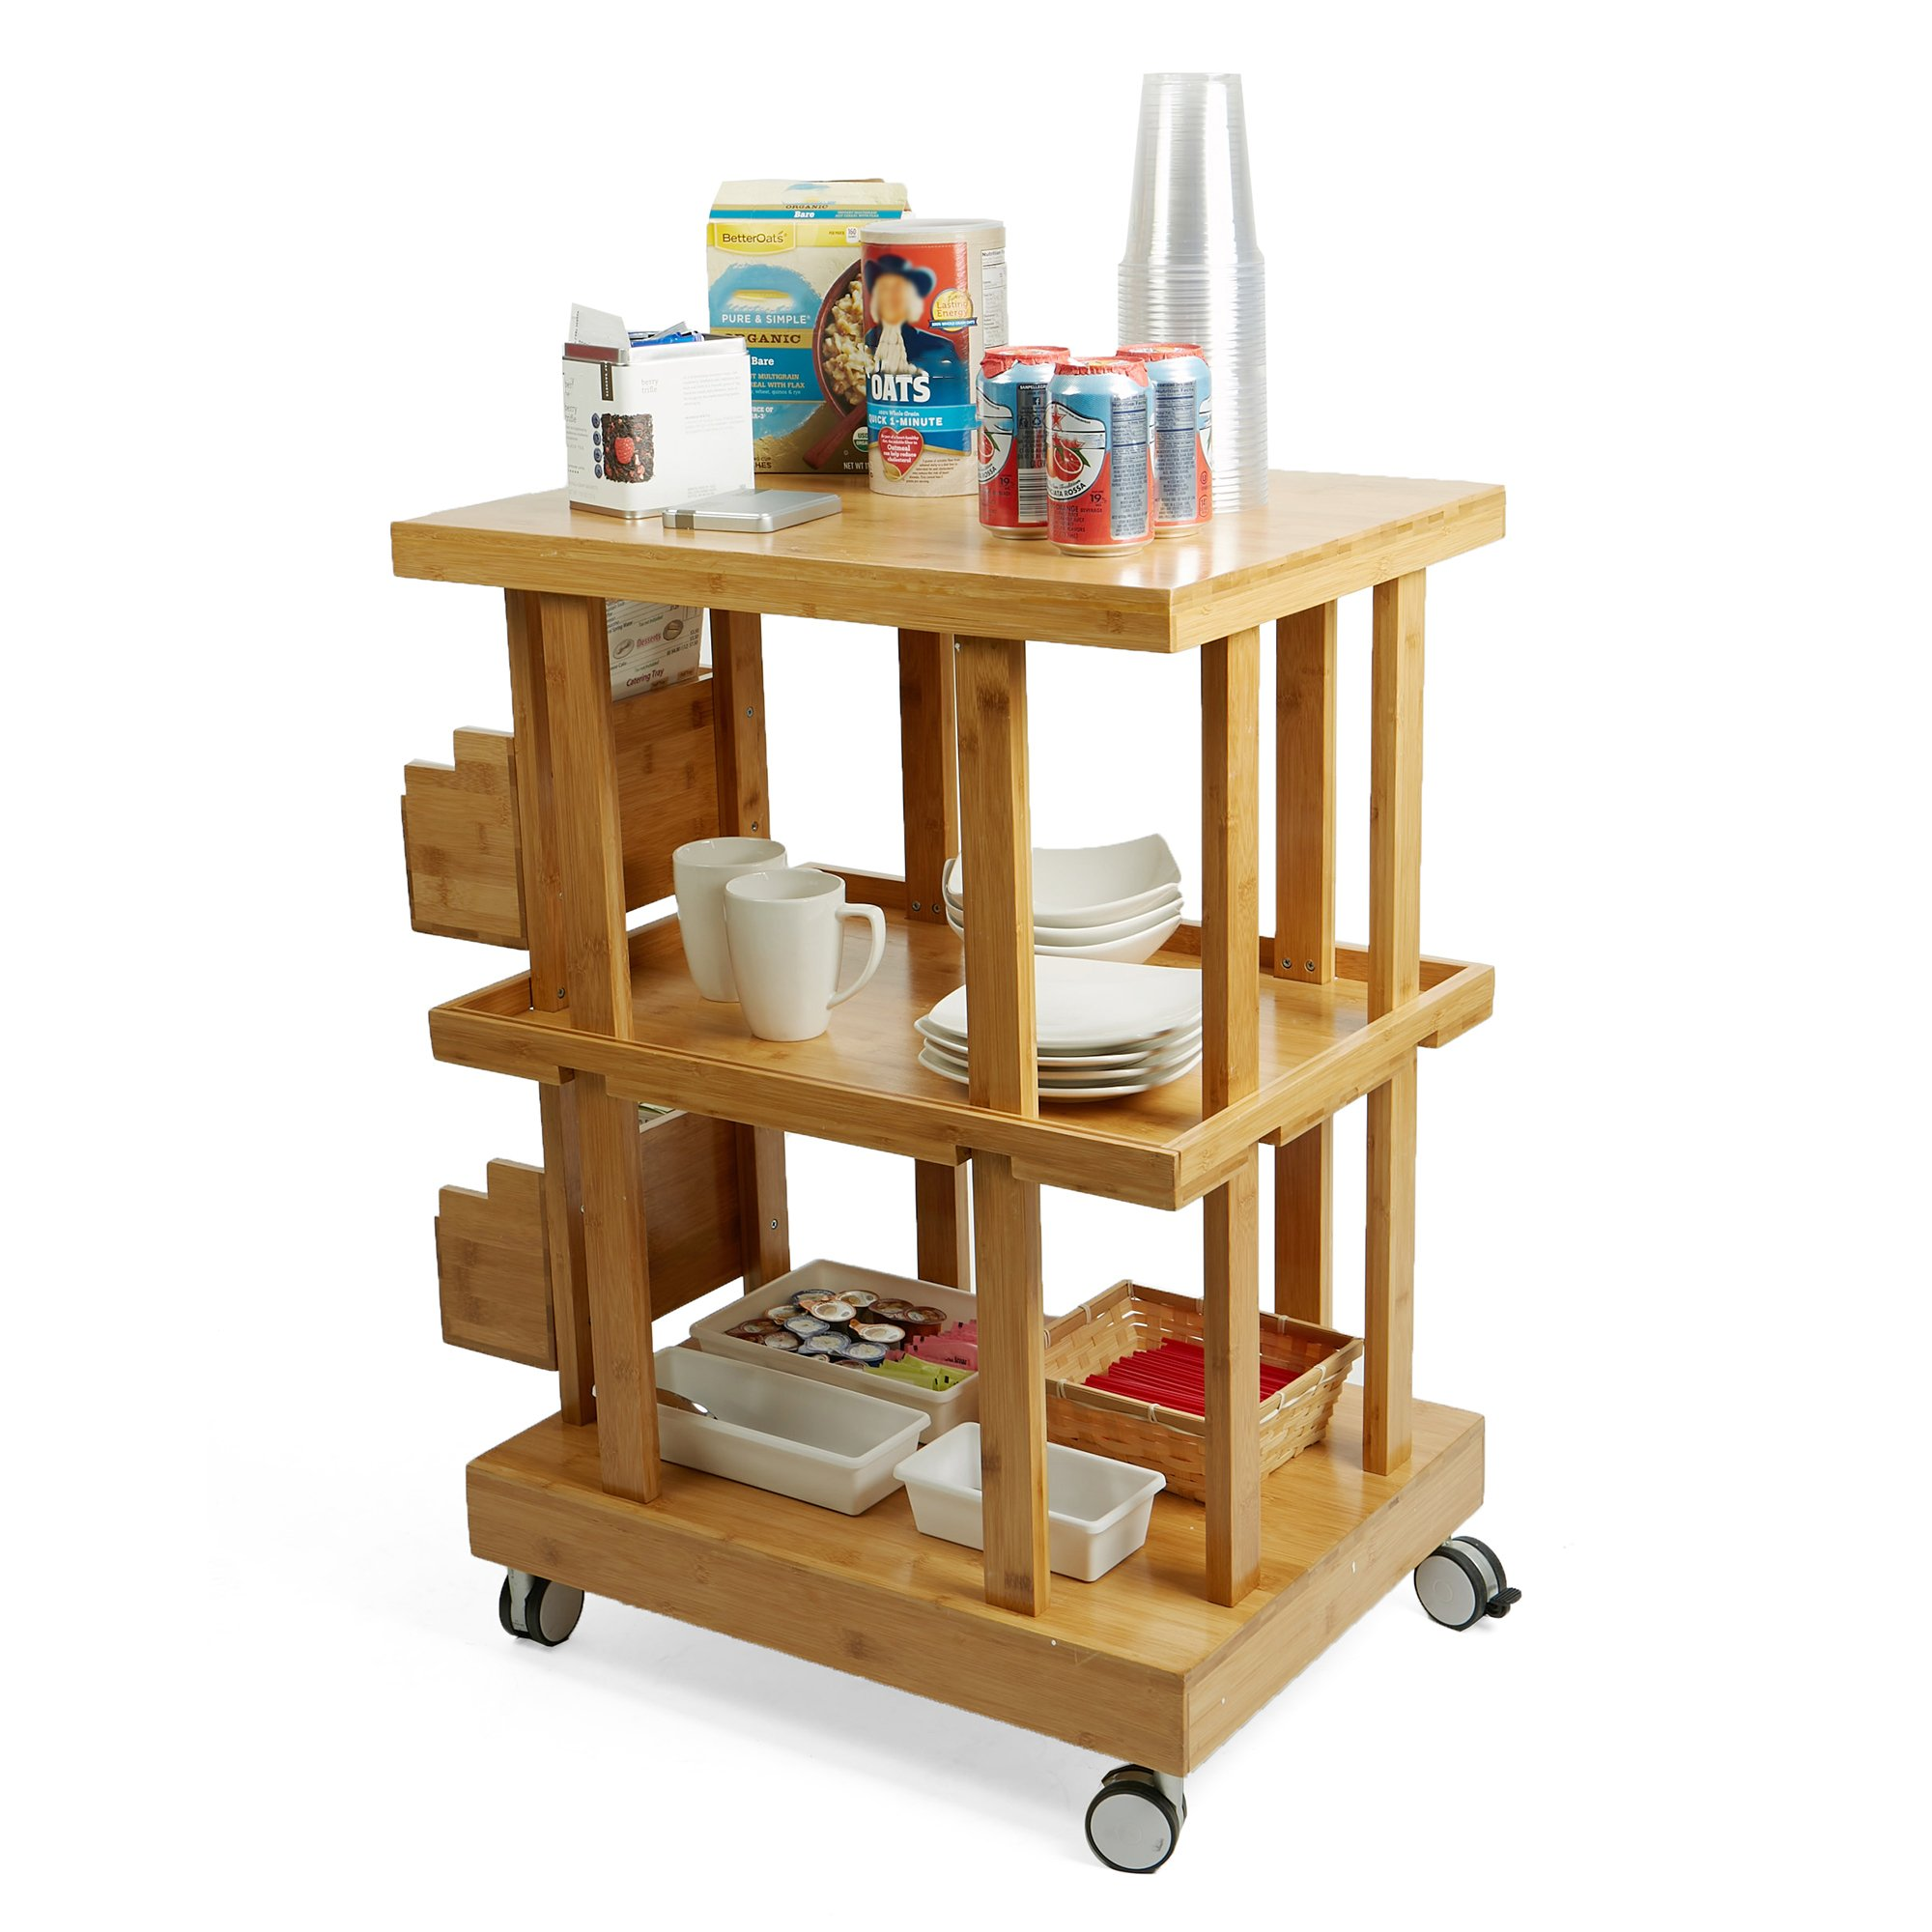 Mind Reader 3-Tier Kitchen Utility Cart with 2 Storage Compartments, Bamboo Wood, Brown by Mind Reader (Image #7)